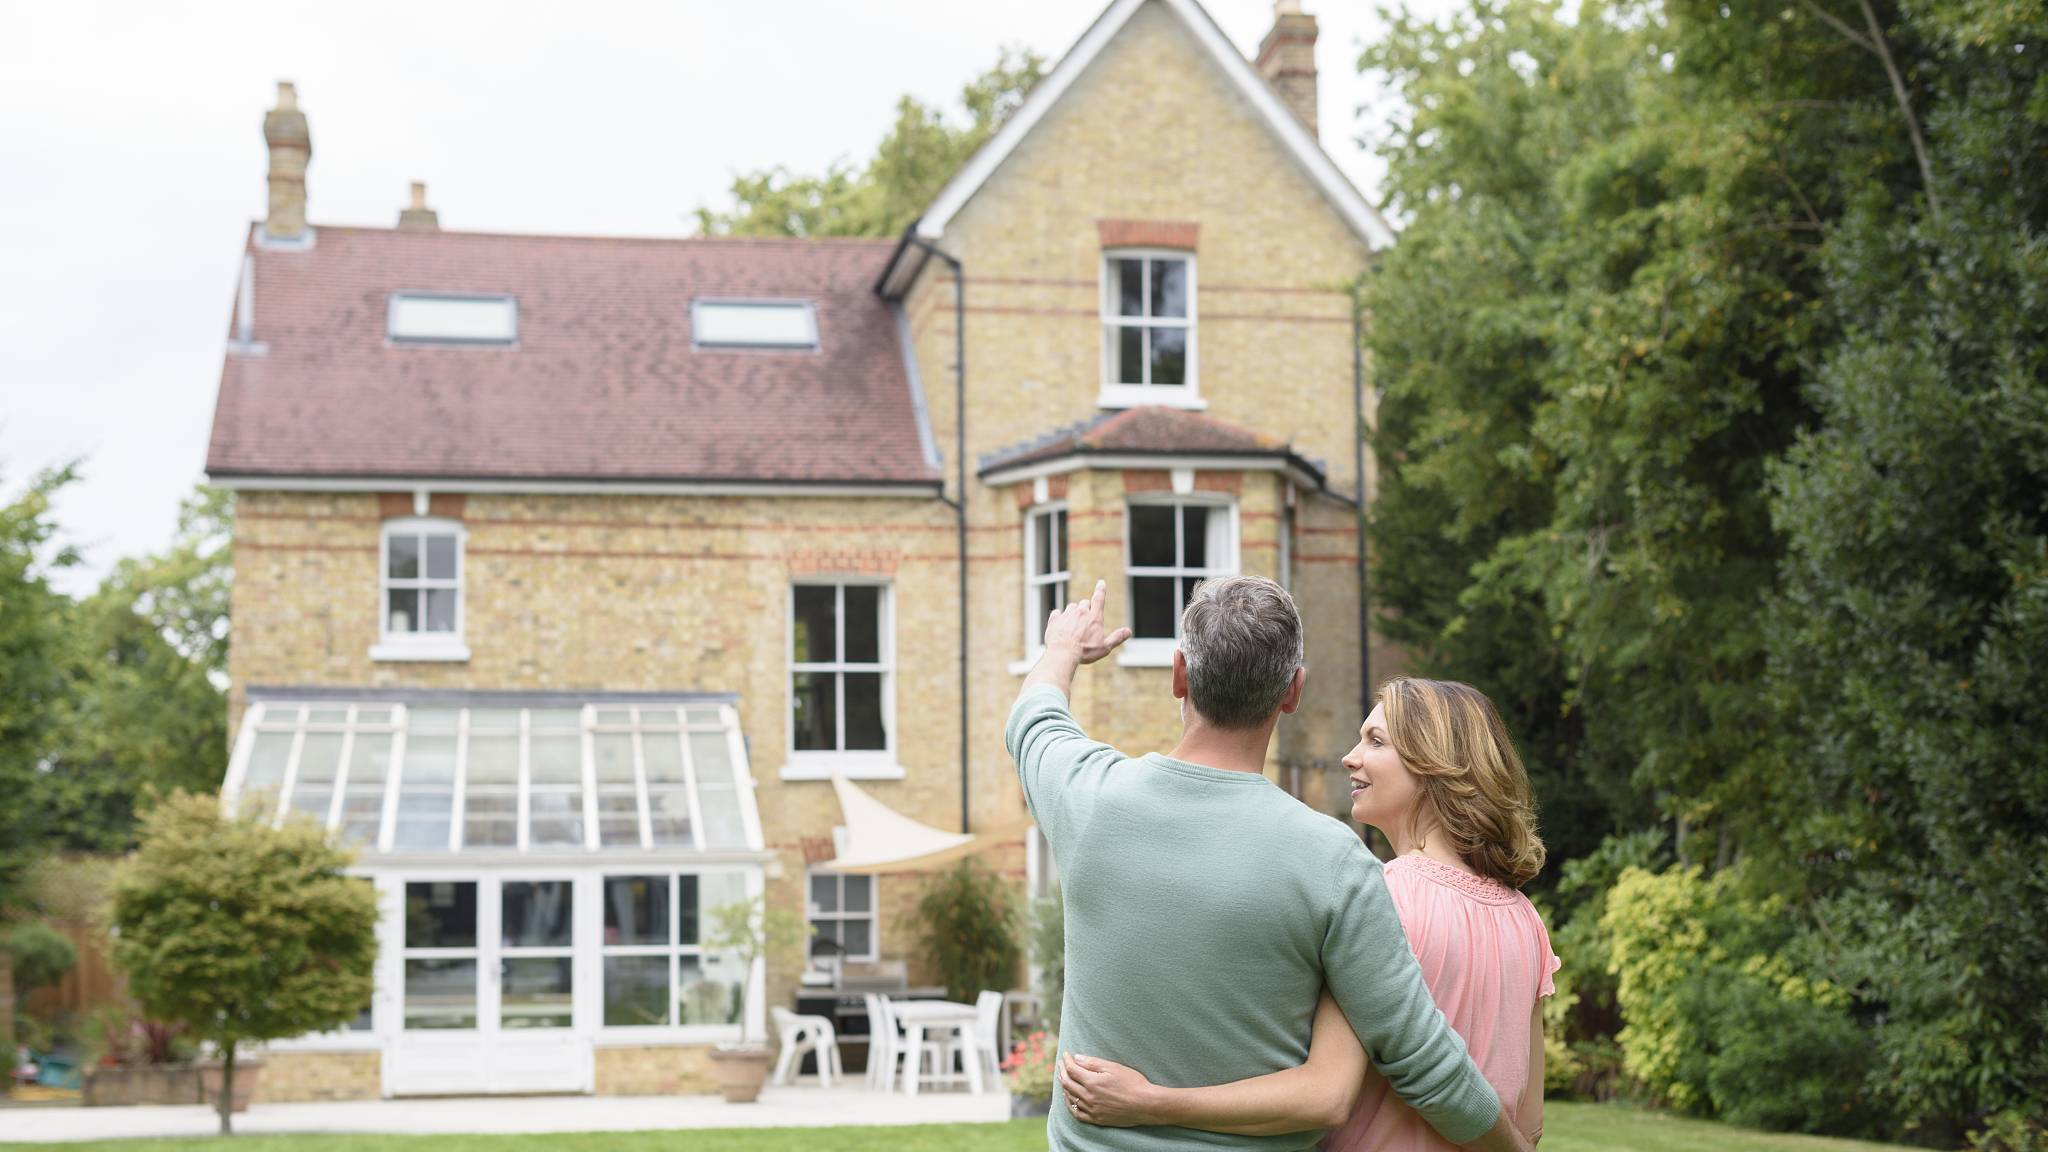 Why are house prices rising amid the worst economic crisis since WWII?